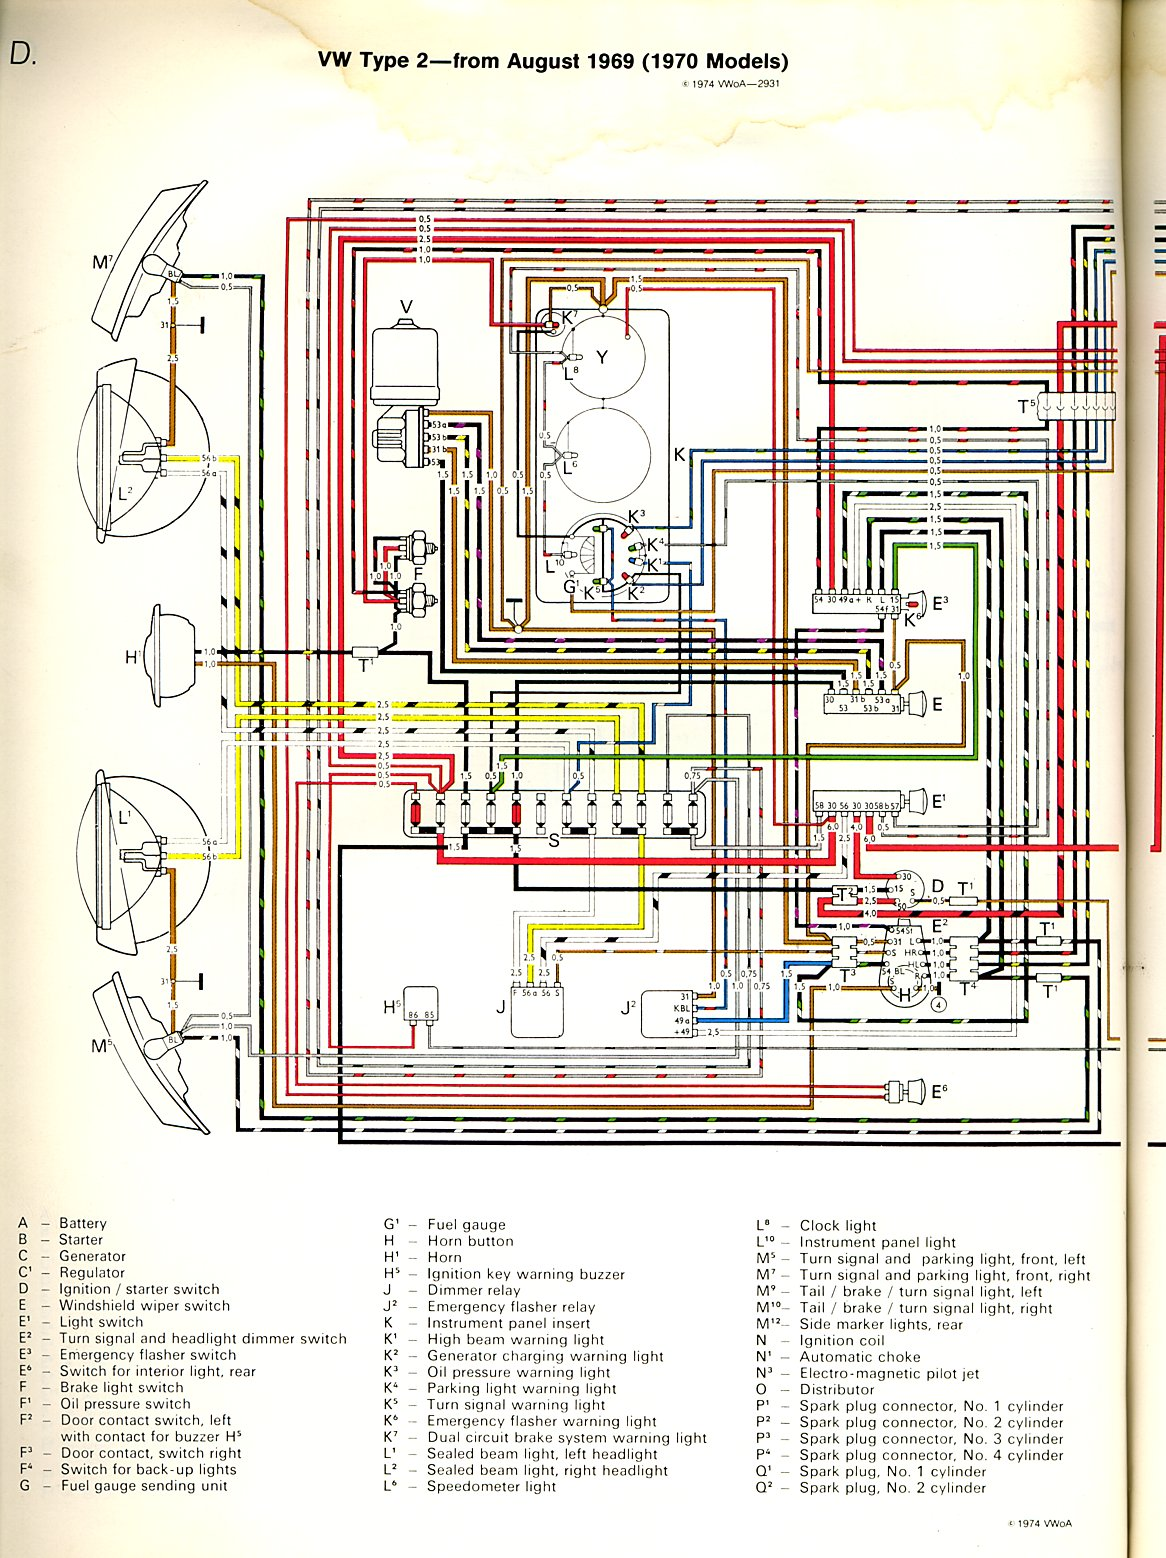 baybus_70a 80 series headlight wiring diagram rims wiring diagram \u2022 wiring Wiring Harness Diagram at crackthecode.co